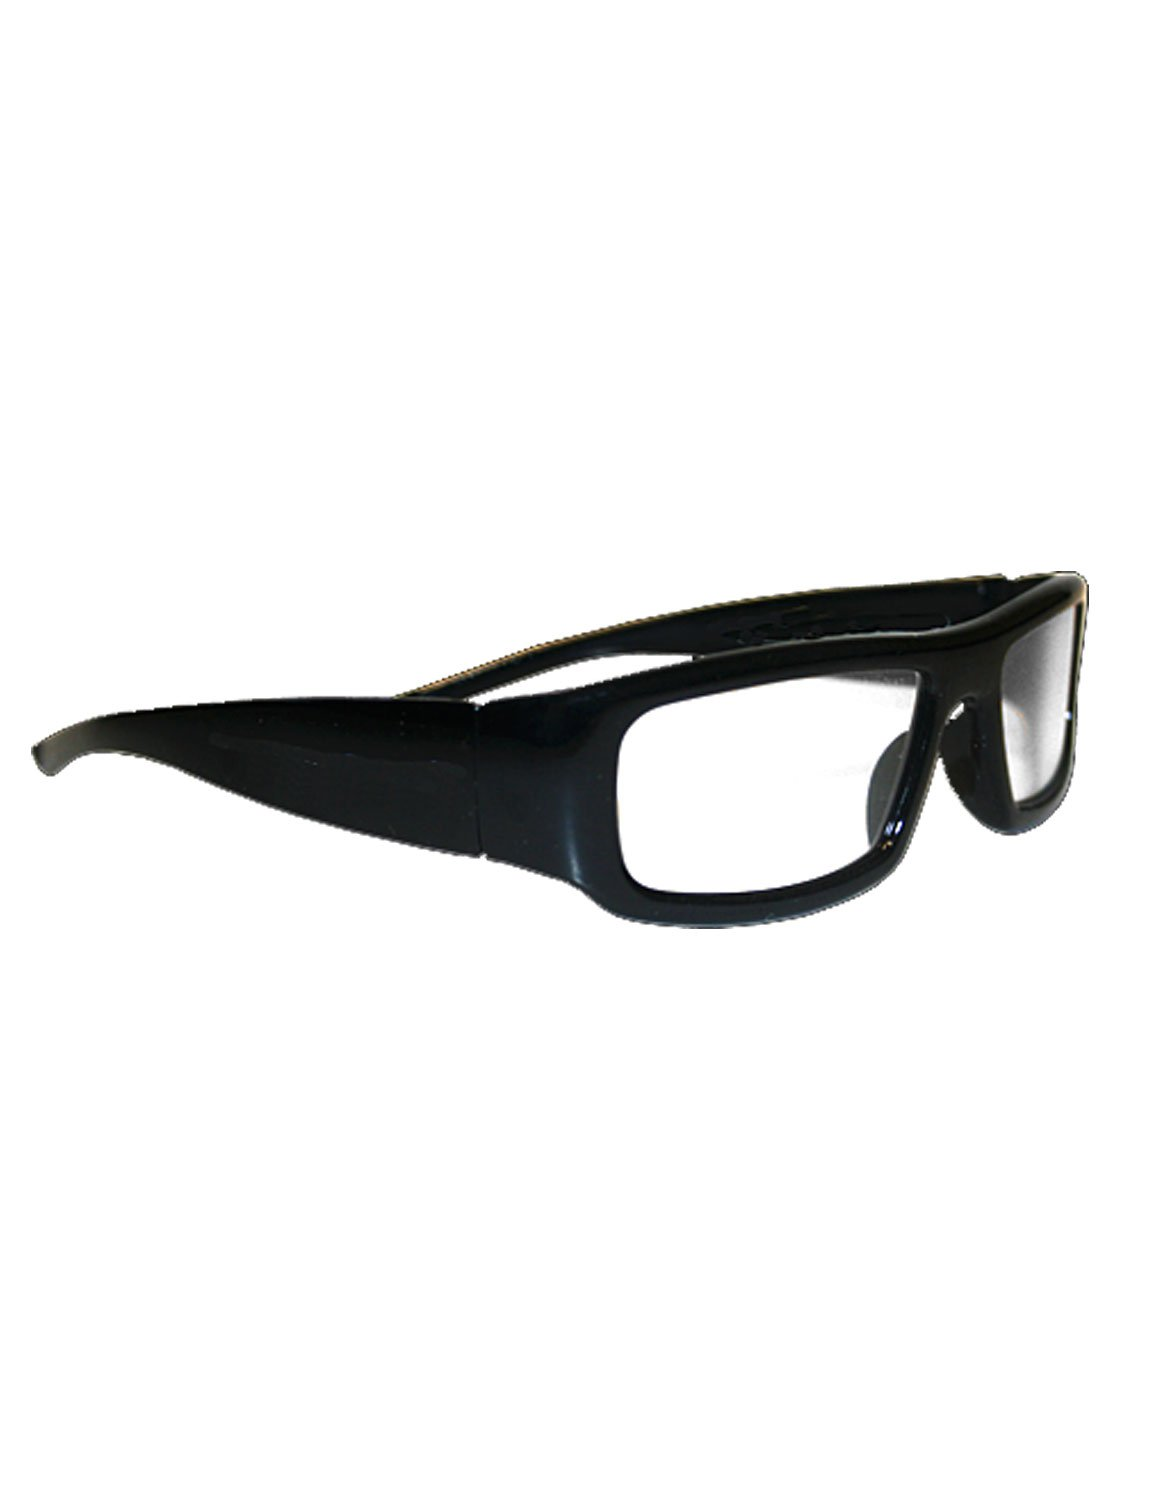 Sunshine Joy® Deluxe Plastic 3D Glasses Amazing 3-D Effects - Works on all 3-D Reactive Images - For Indoor Use Only